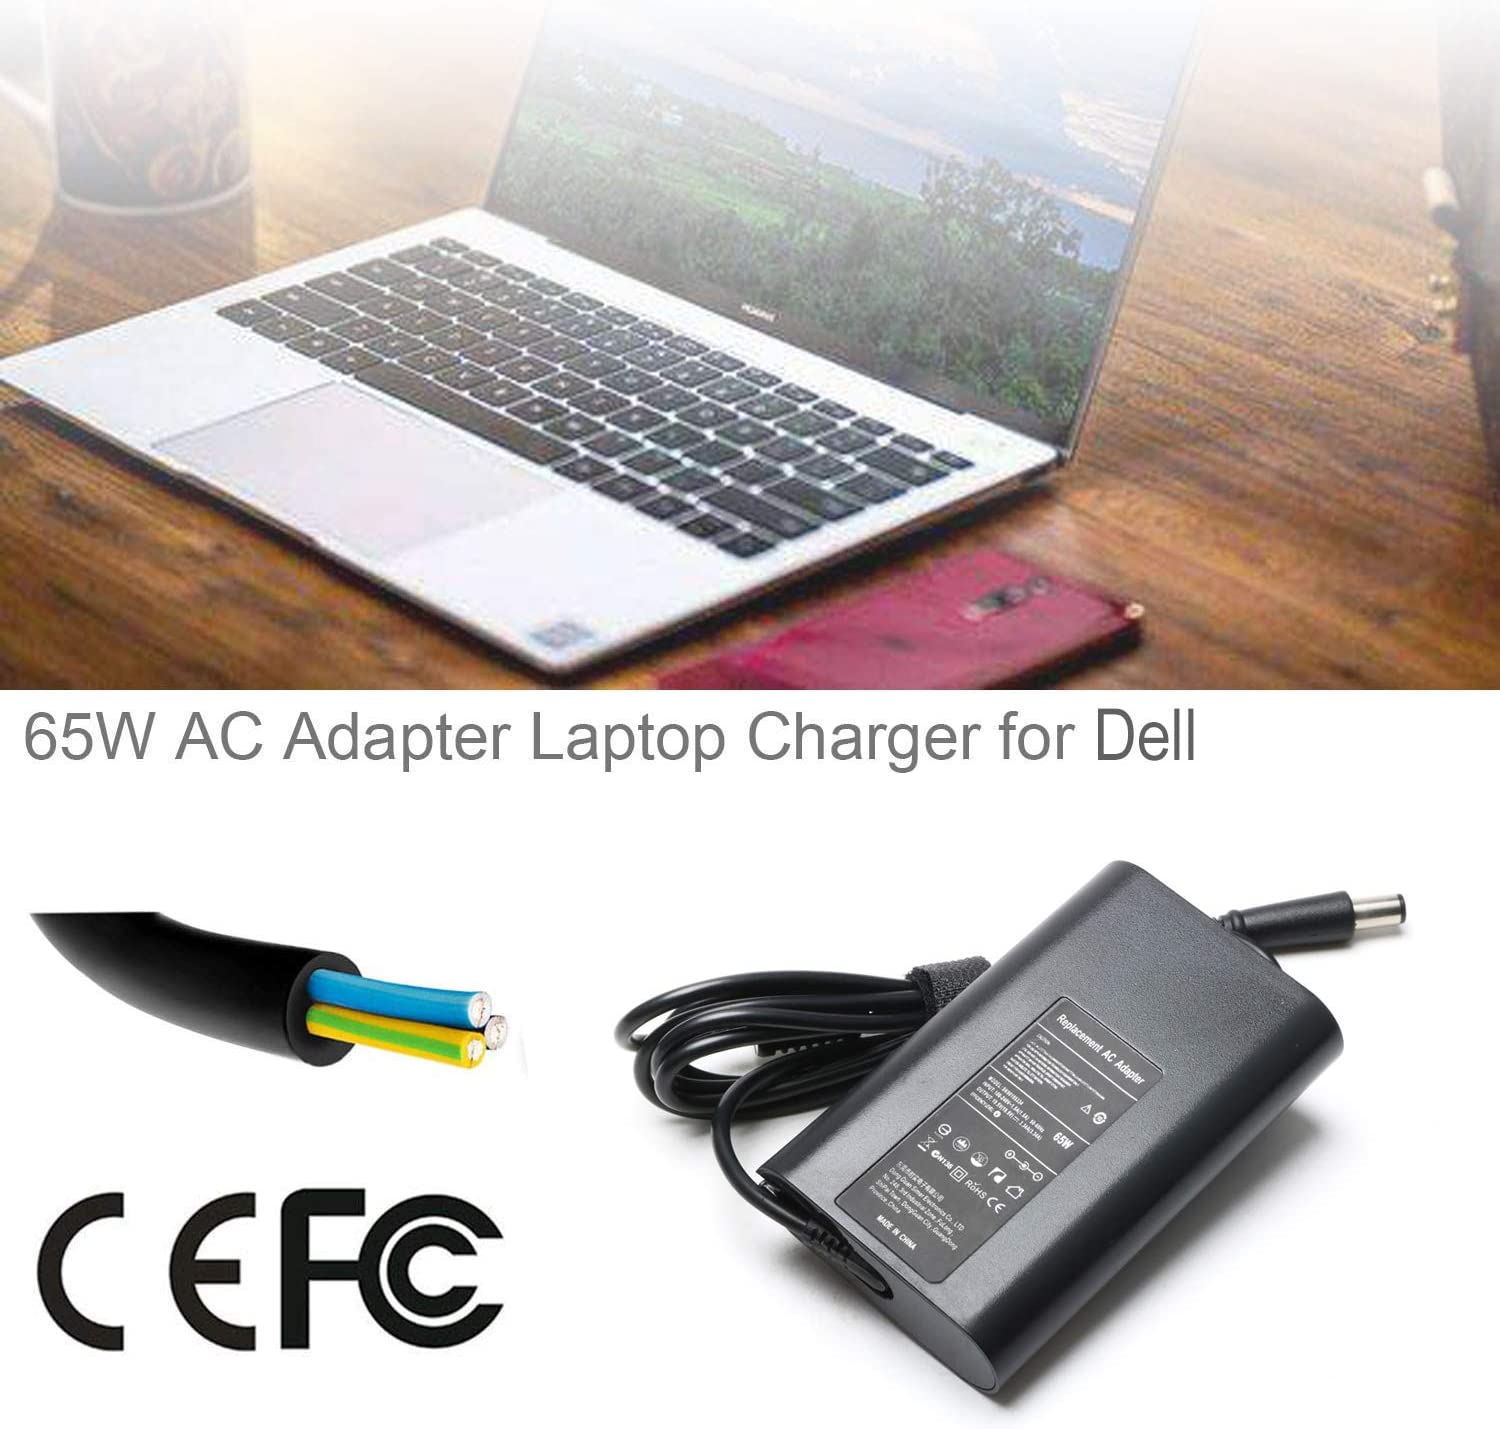 65W Laptop Charger PC Supply Power for /Dell inspiron PA-12 PA-2E 6400 6000 1000 1400 1501 1525 1520 15R N5010 M5040; Latitude 7380 7390 7480 7490 5480 5490 5488 5495 65w Power AC Adapter Charger